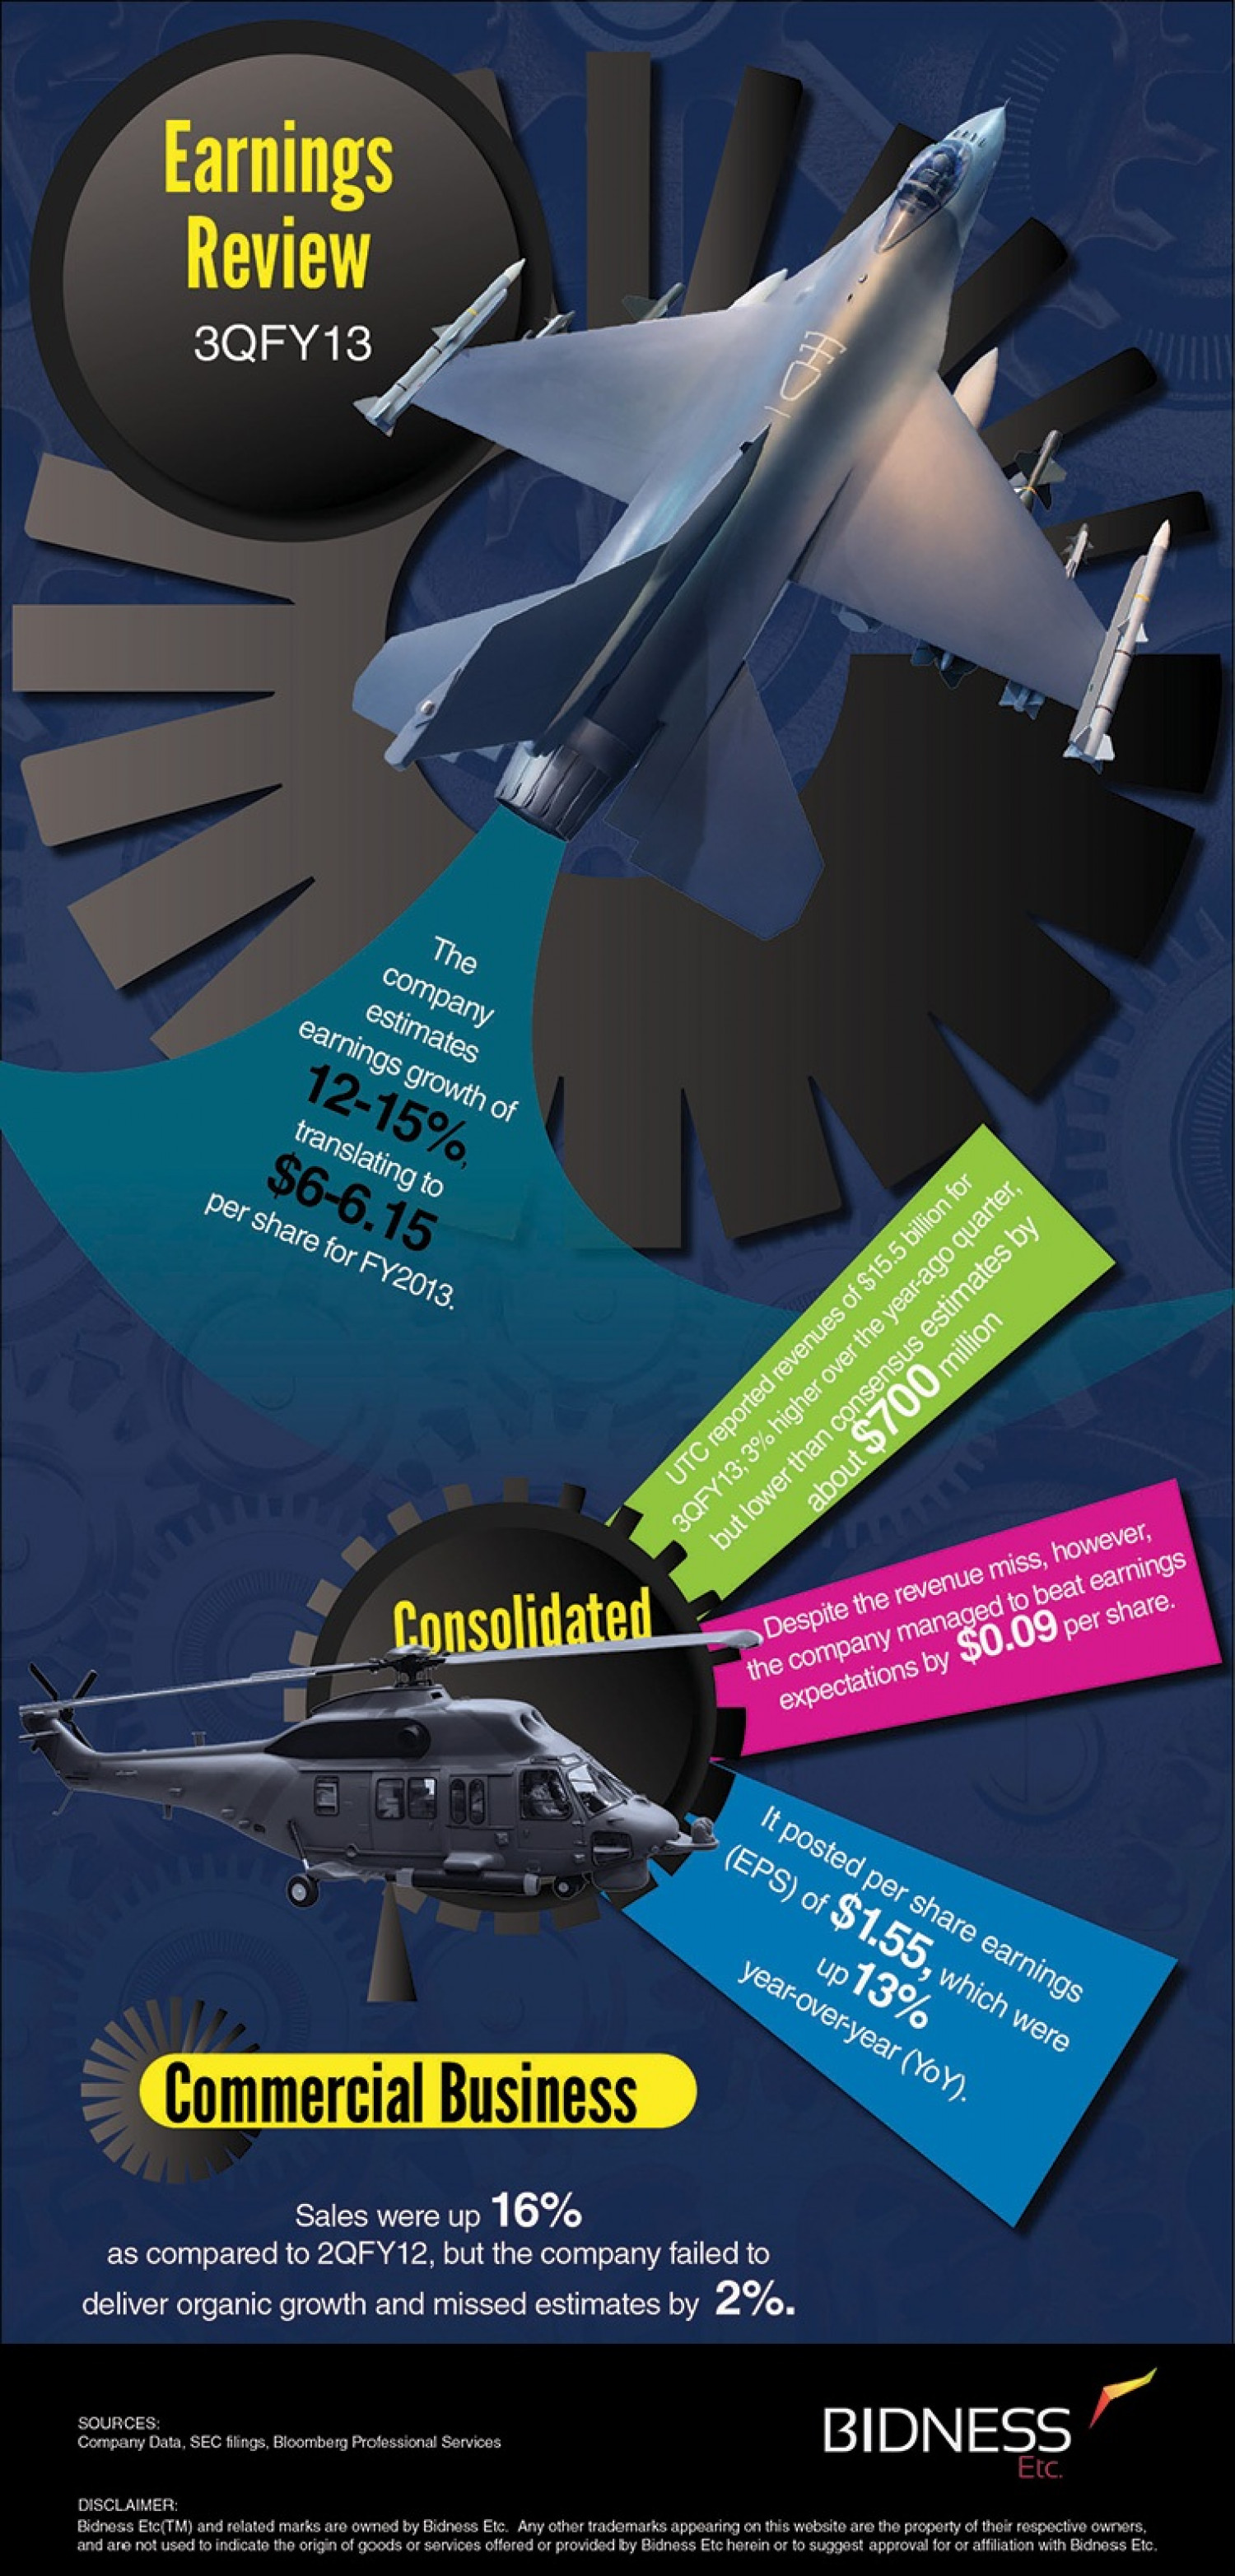 United technologies (UTC) Earnings Review Infographic